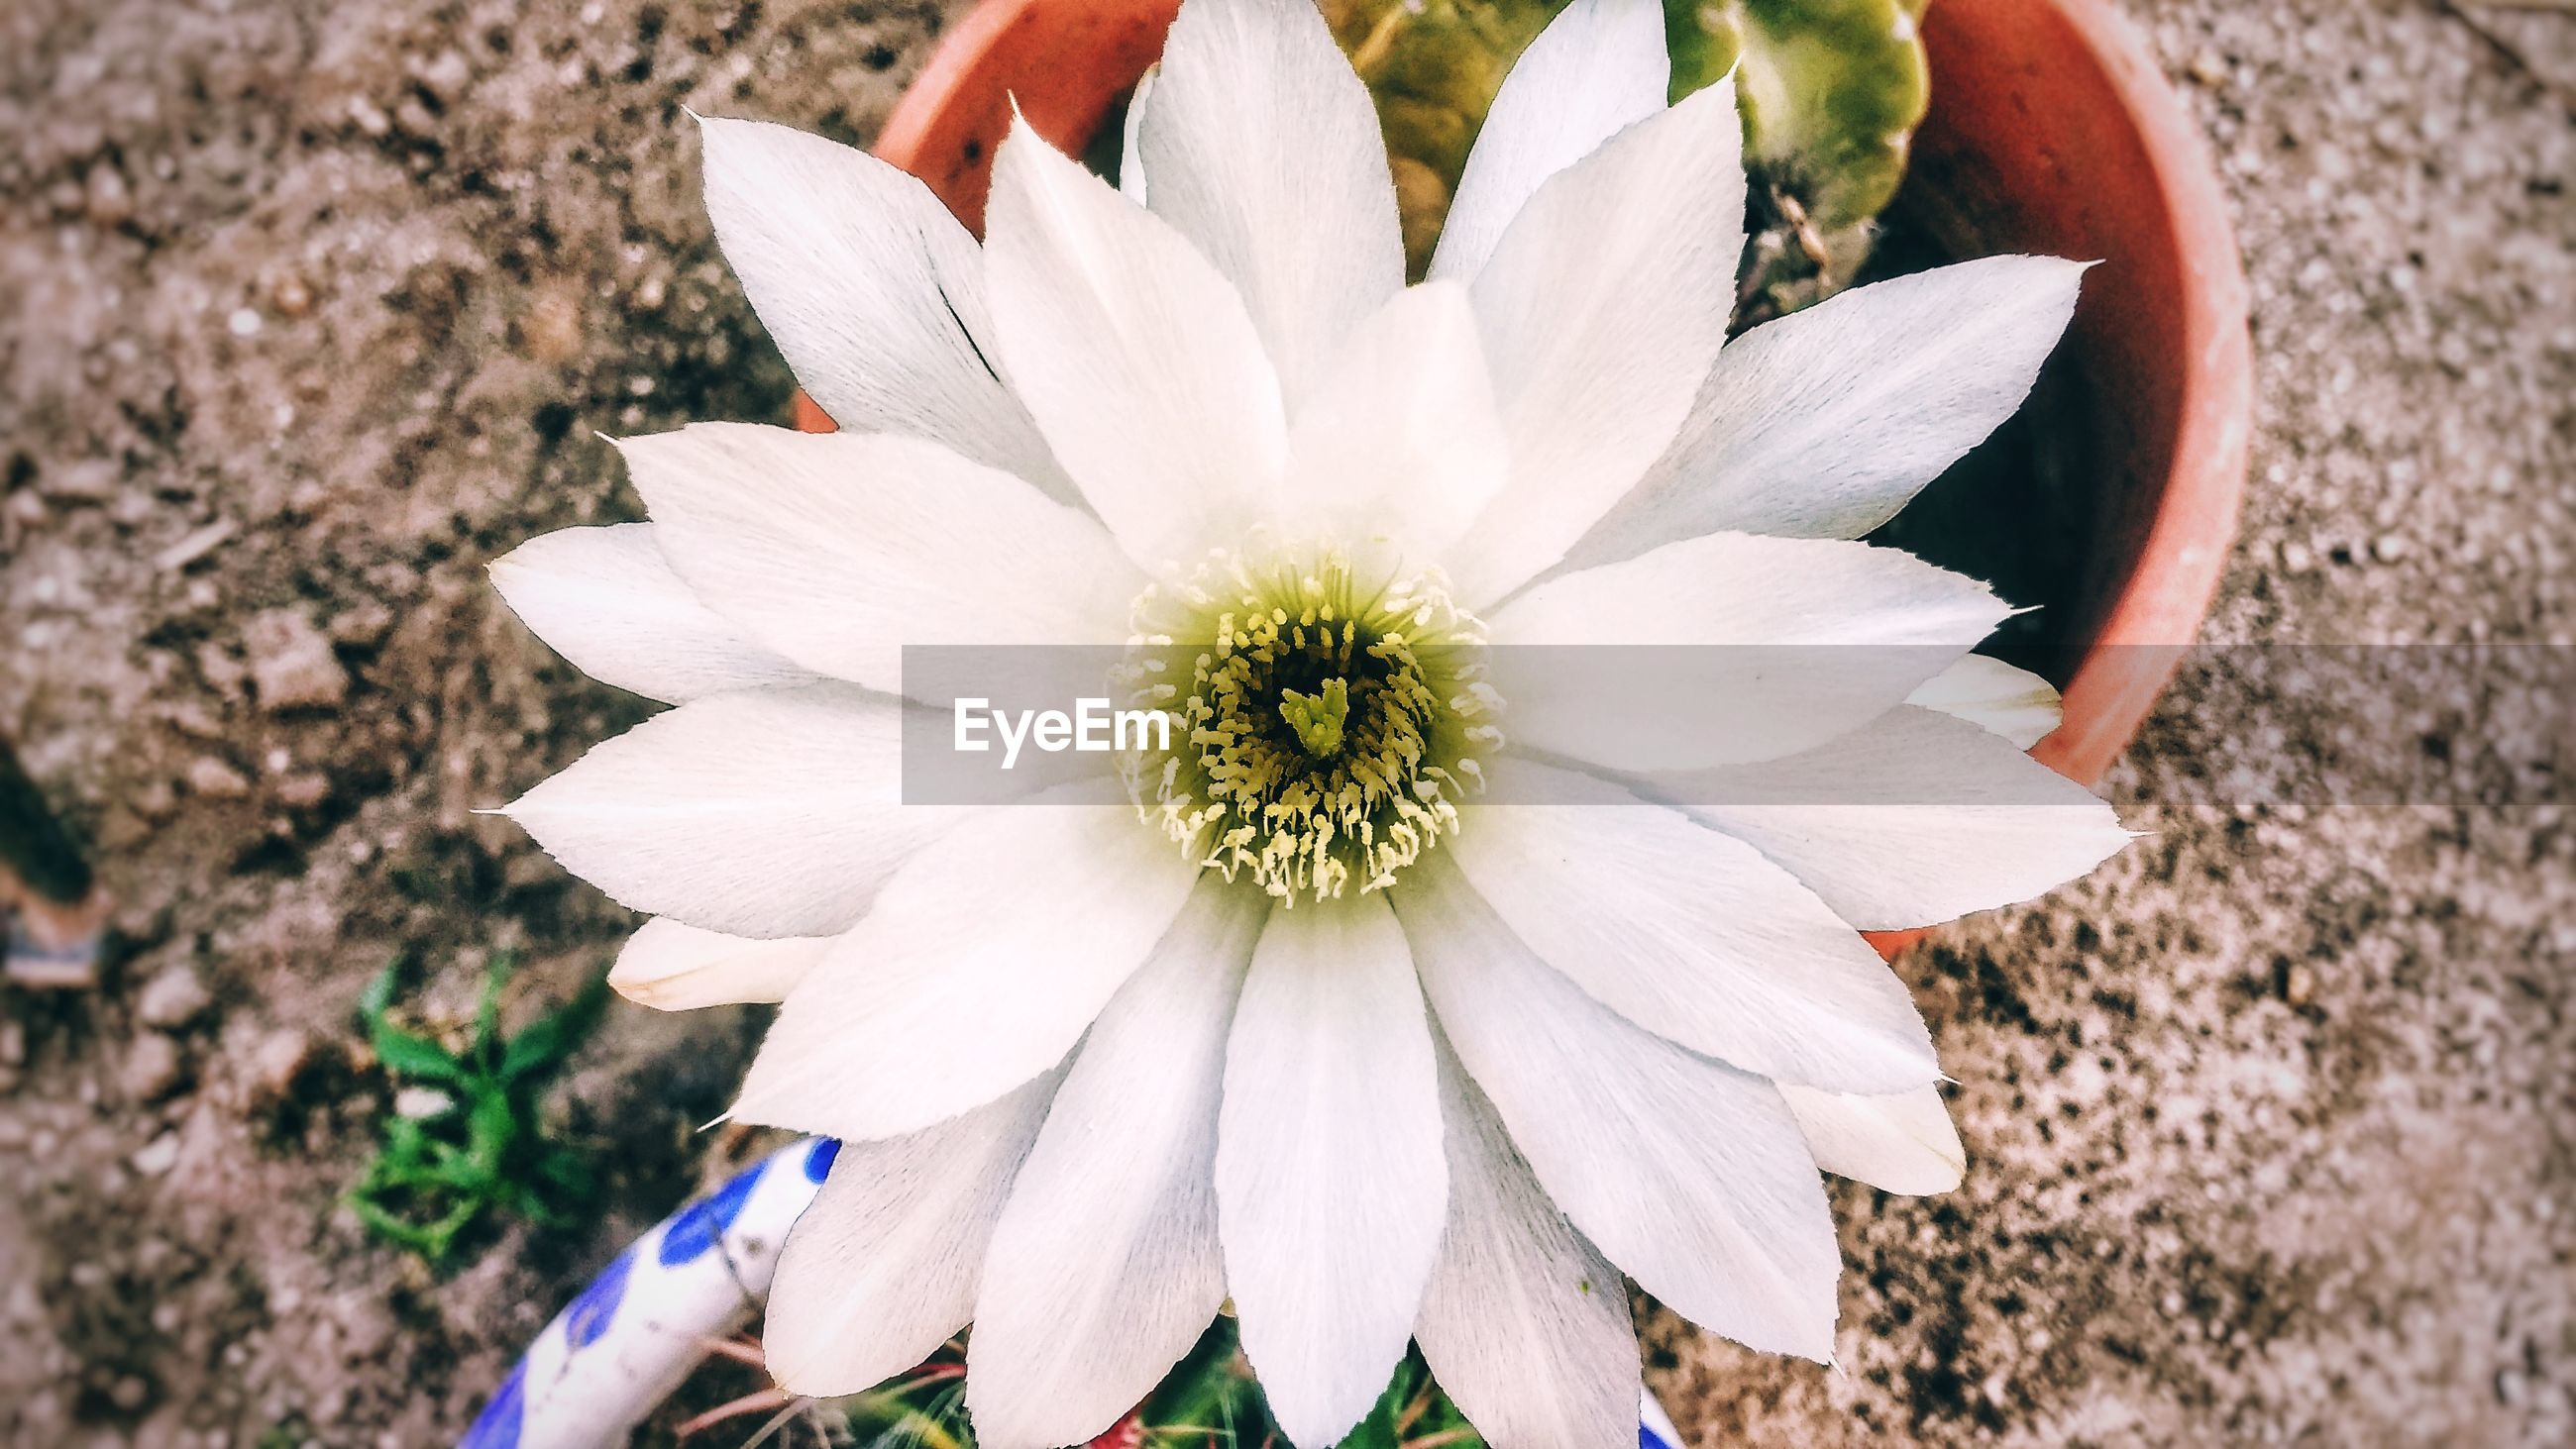 CLOSE-UP HIGH ANGLE VIEW OF WHITE FLOWER BLOOMING OUTDOORS